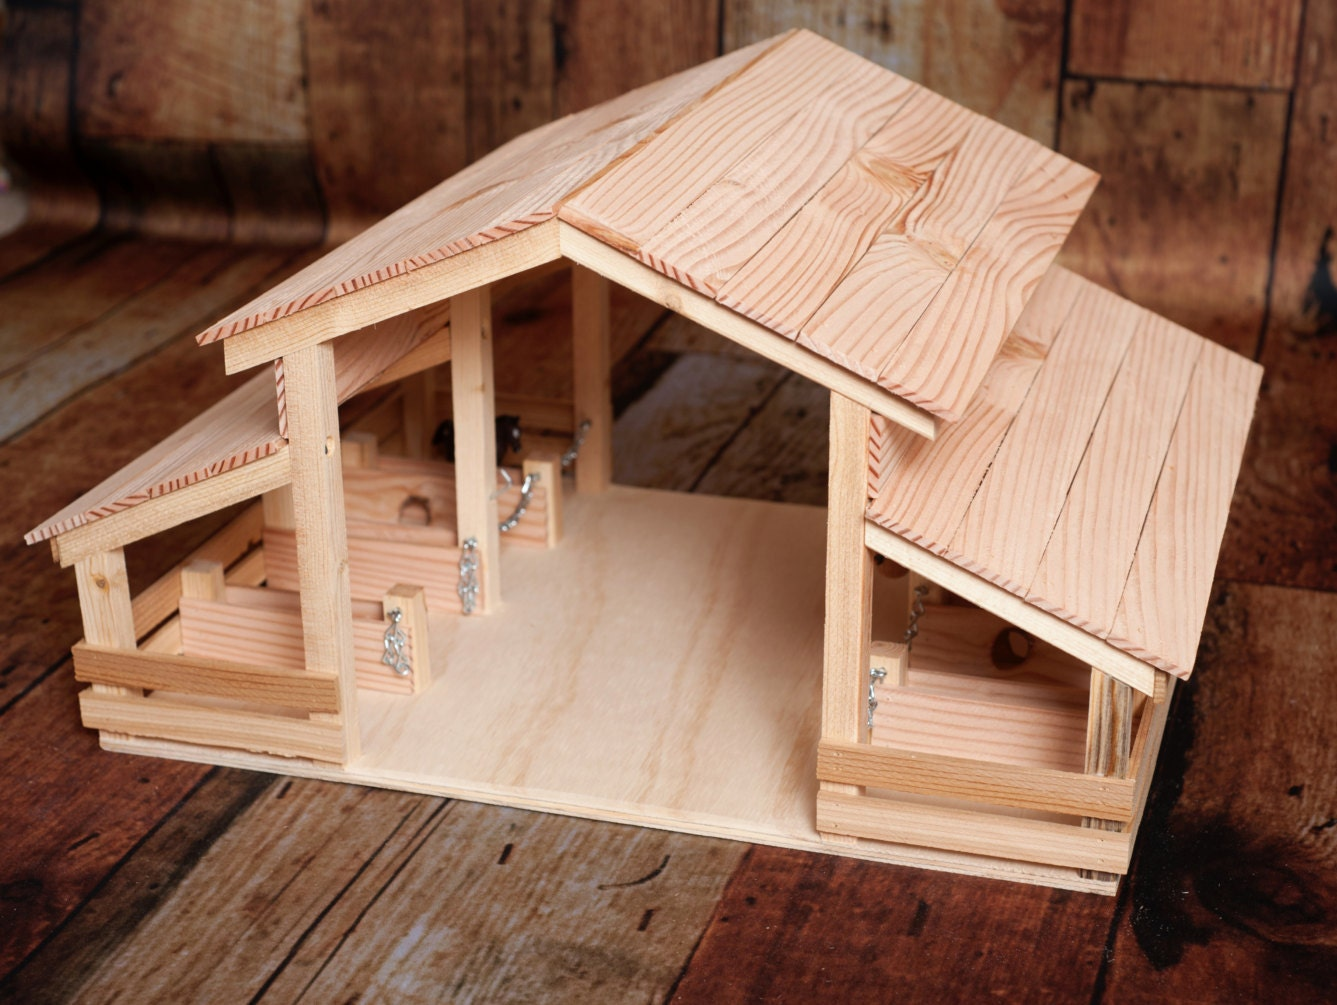 Handmade Wood Toy Barn with 8 Stalls